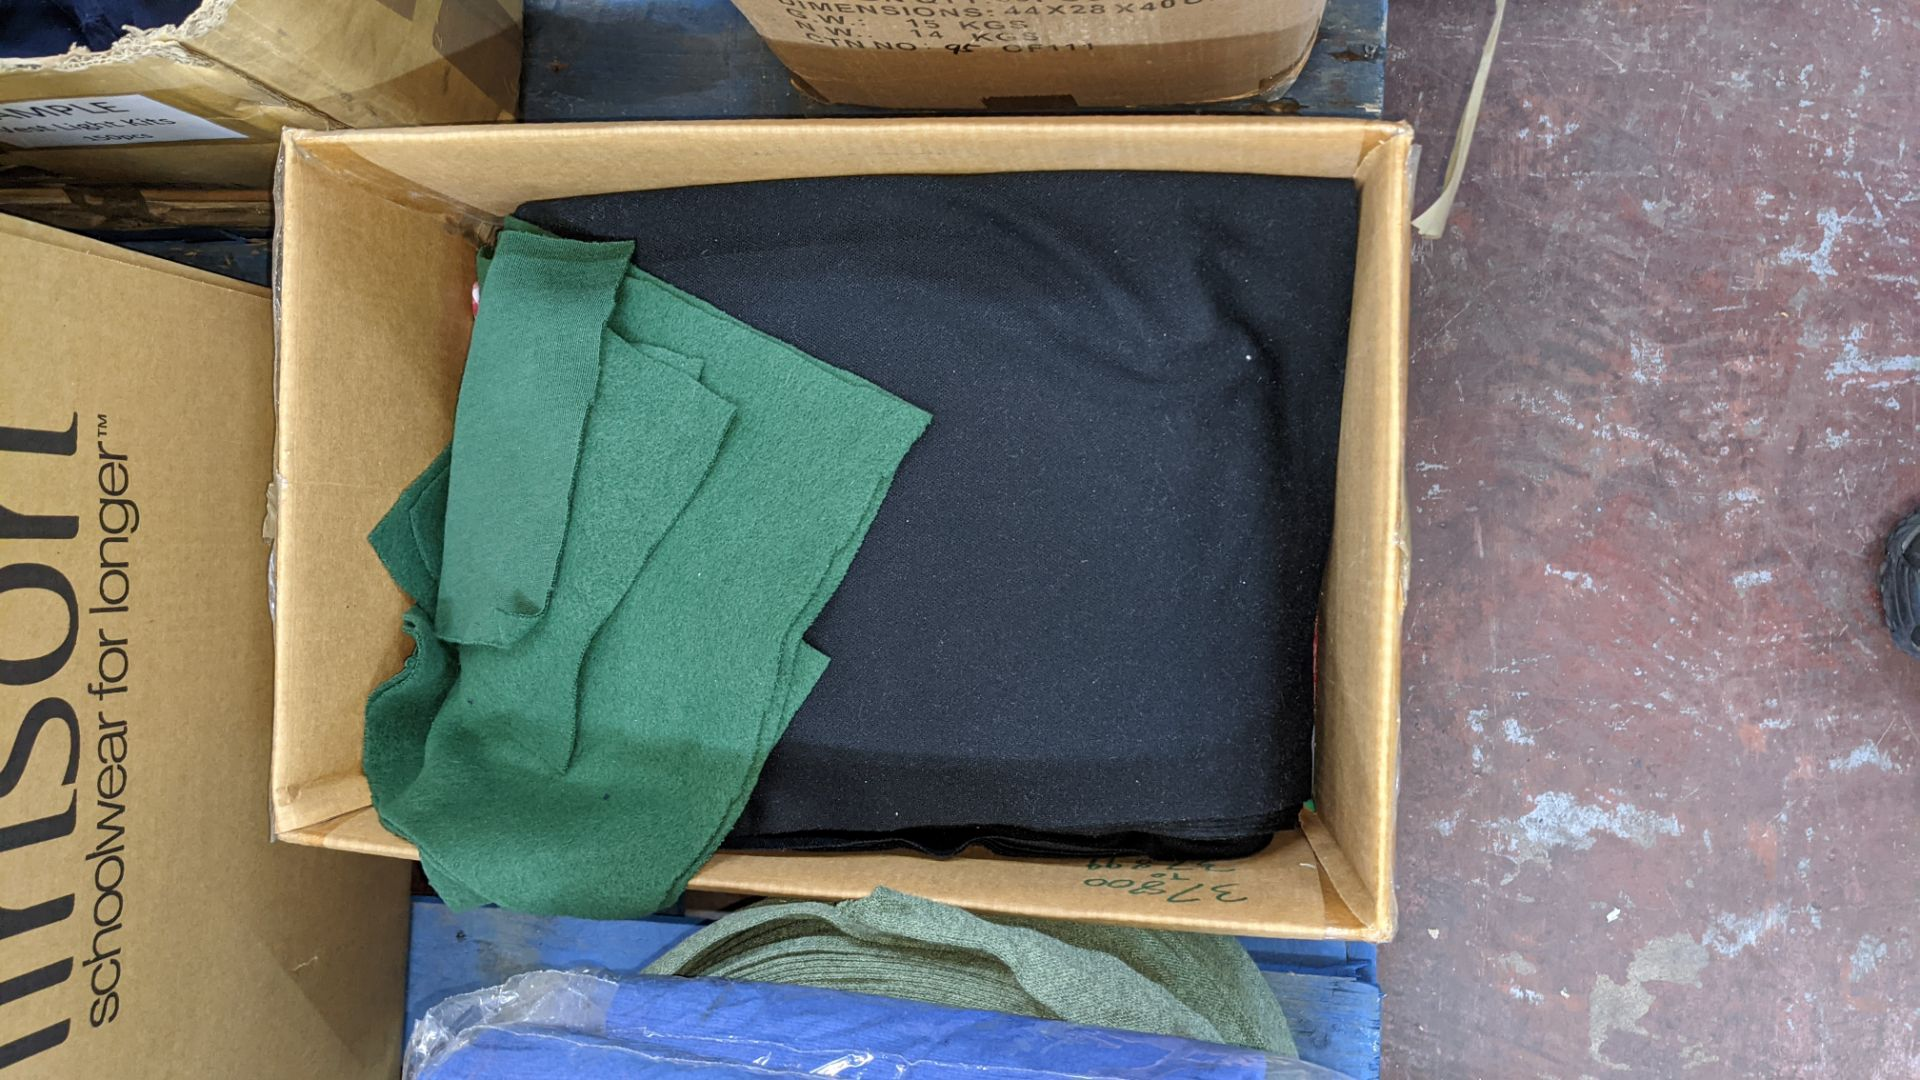 Quantity of assorted pieces of fabric in blue, green & black - this lot consists of 4 assorted size - Image 4 of 7